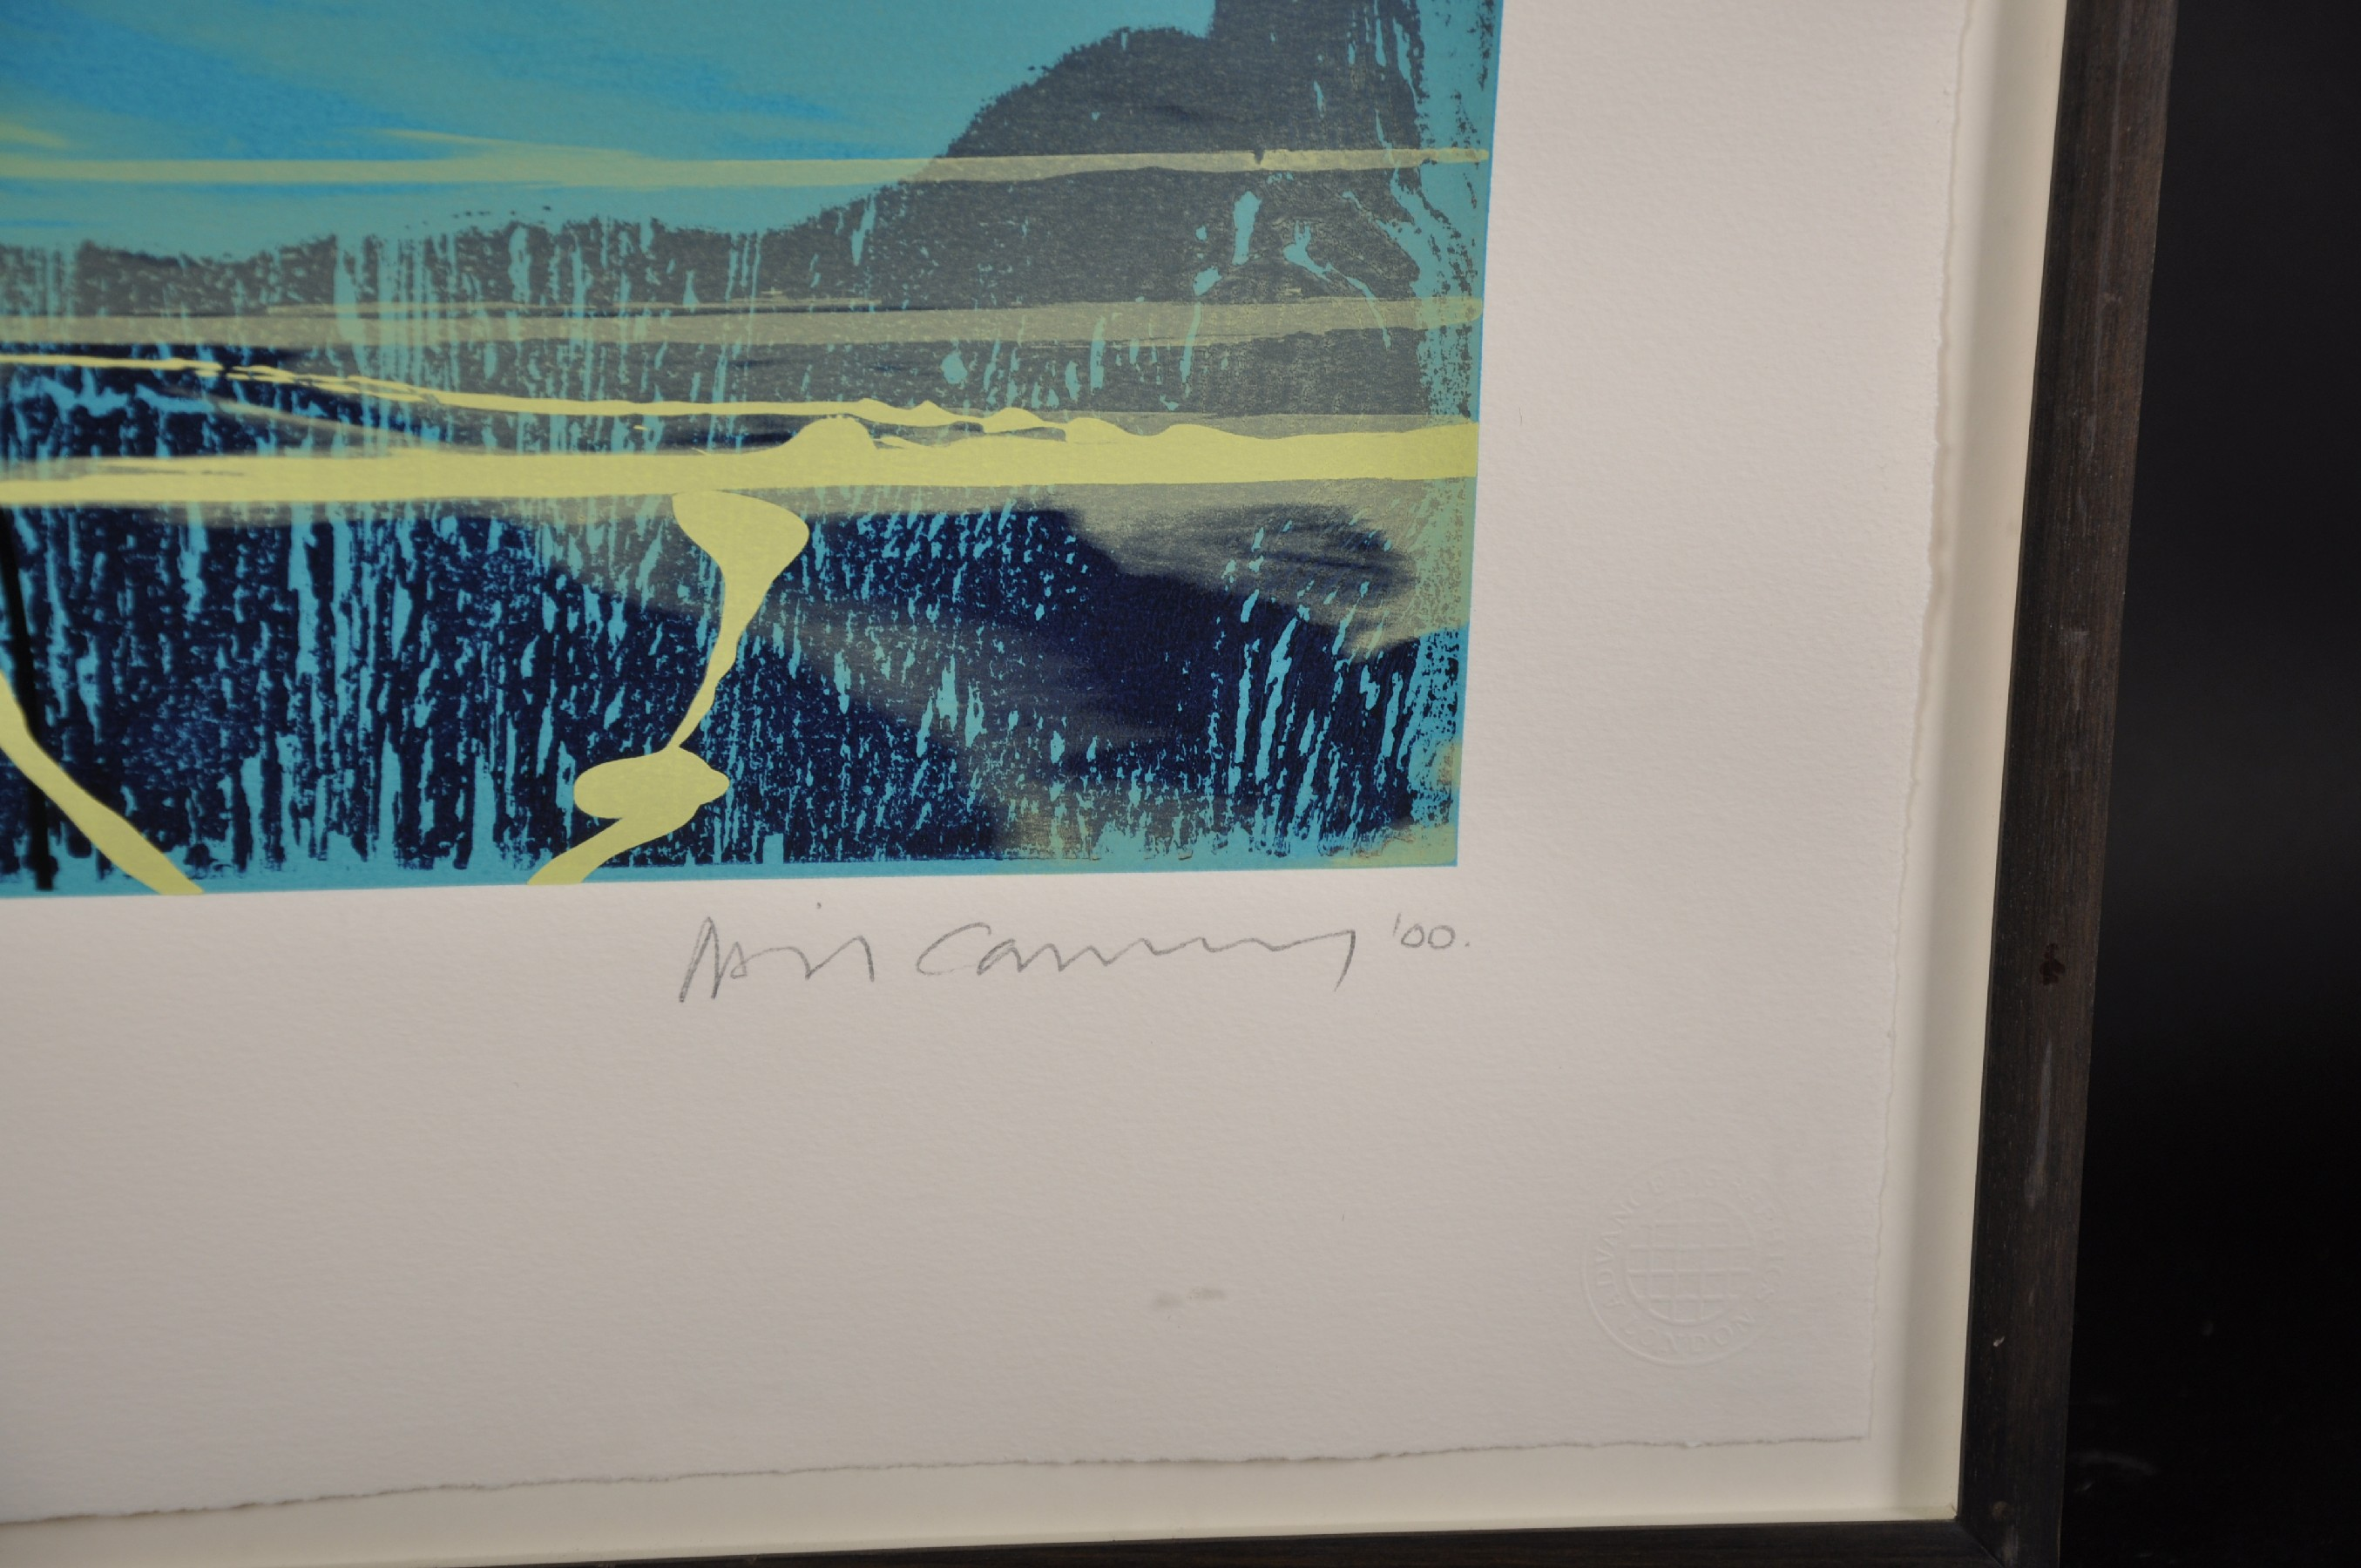 """Neil Canning (1960- ) British. """"Voyage I"""", Screenprint, Signed, Inscribed, Dated '00, and Numbered - Image 4 of 5"""